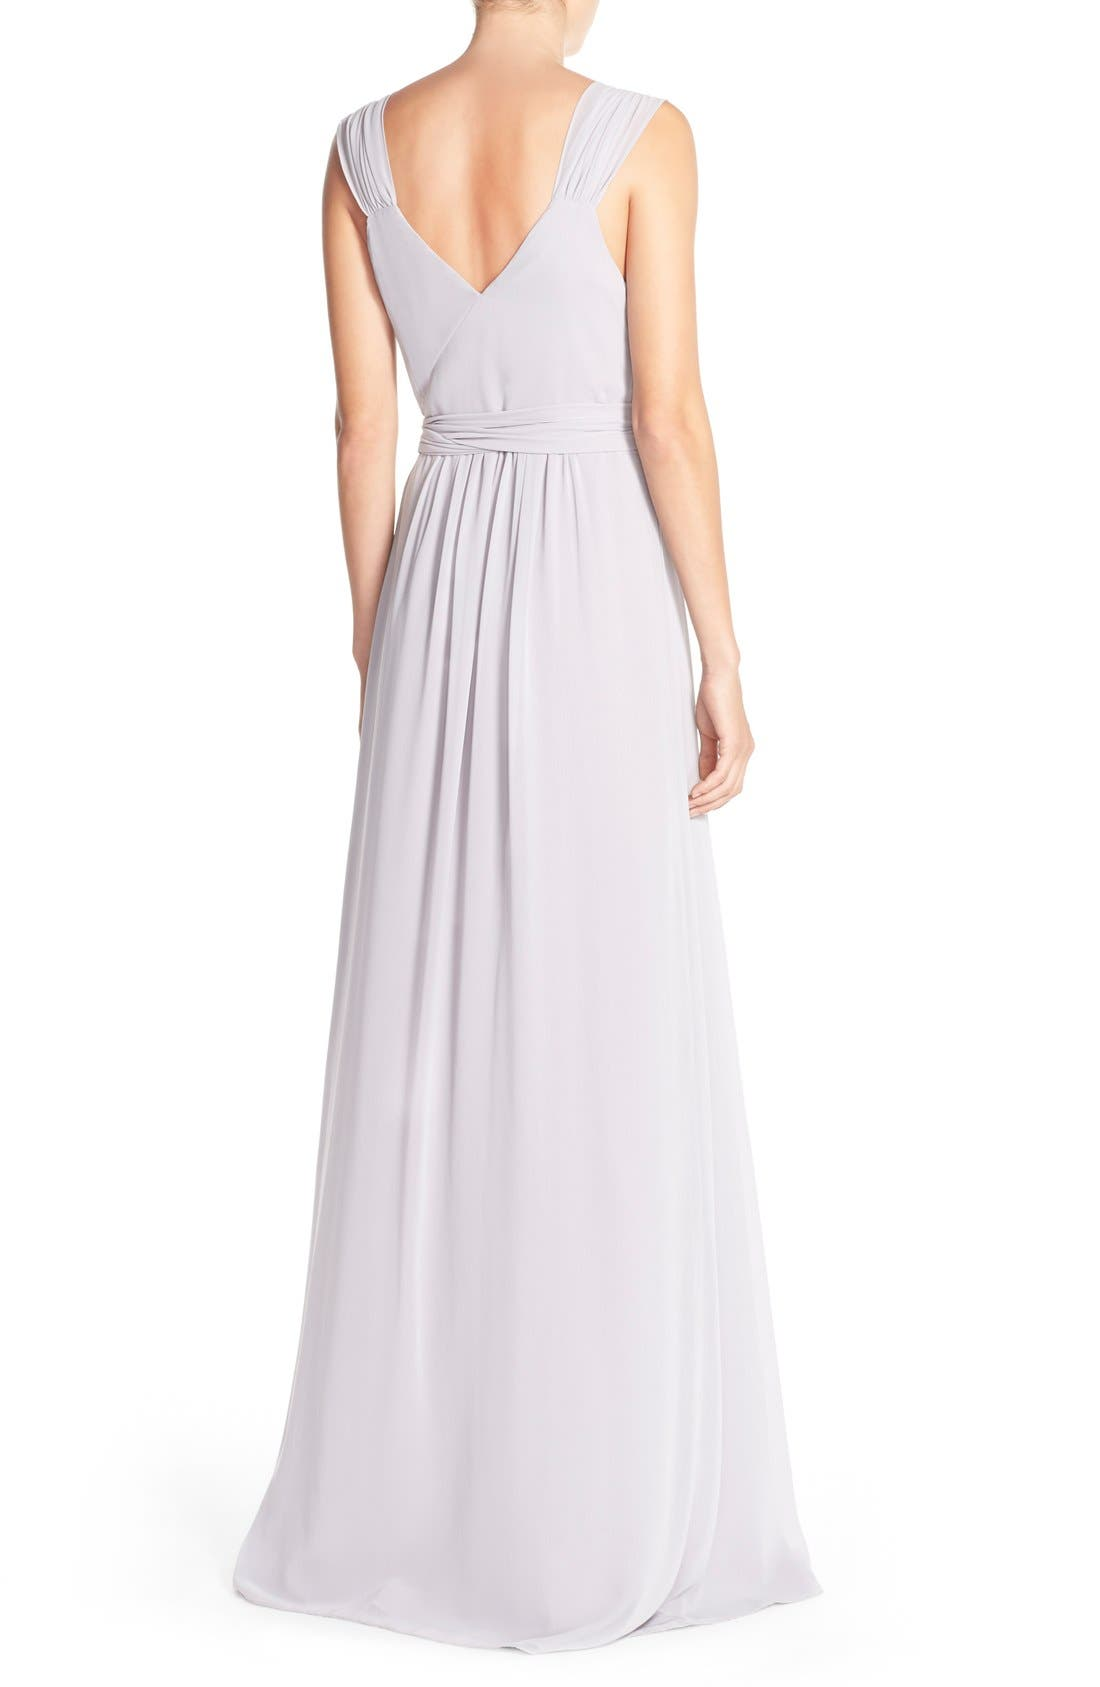 Alternate Image 2  - Ceremony by Joanna August 'Newbury' Gathered Sleeve Chiffon Wrap Gown